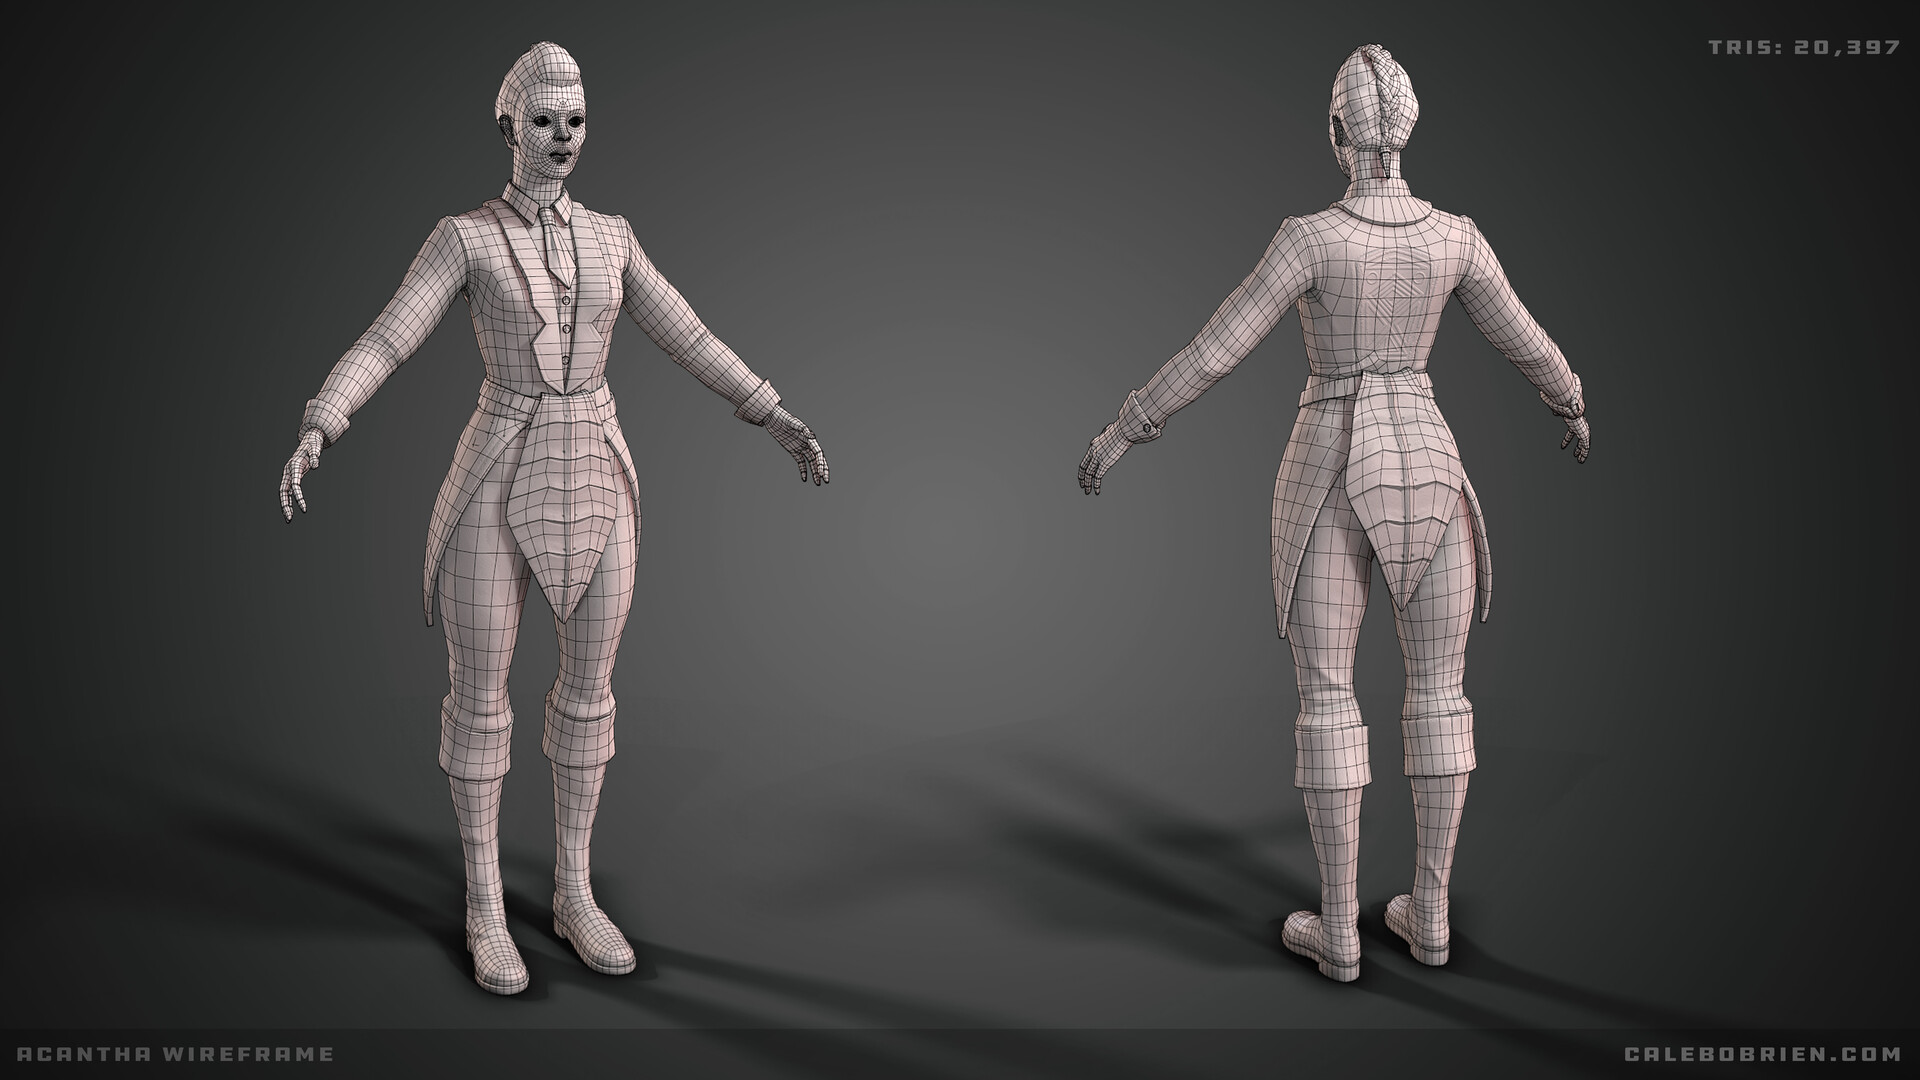 Caleb o brien villain wireframe